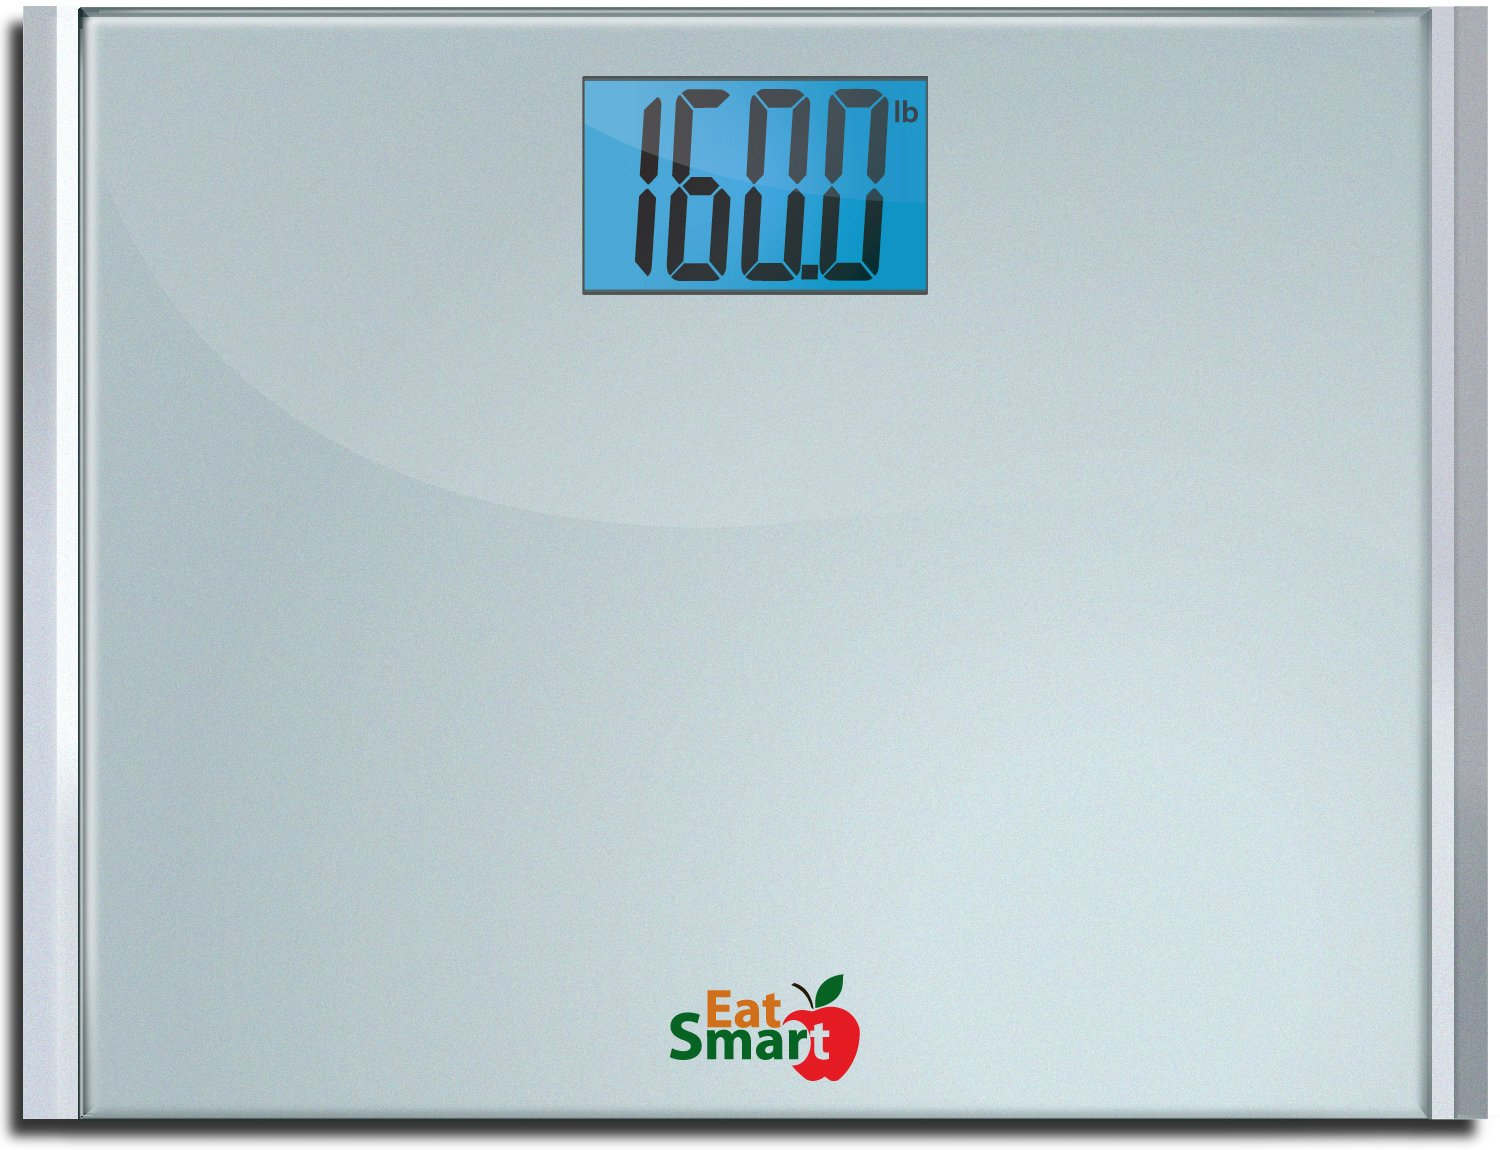 Best Bathroom Scales Best Digital Bathroom Scales - Large display digital bathroom scales for bathroom decor ideas